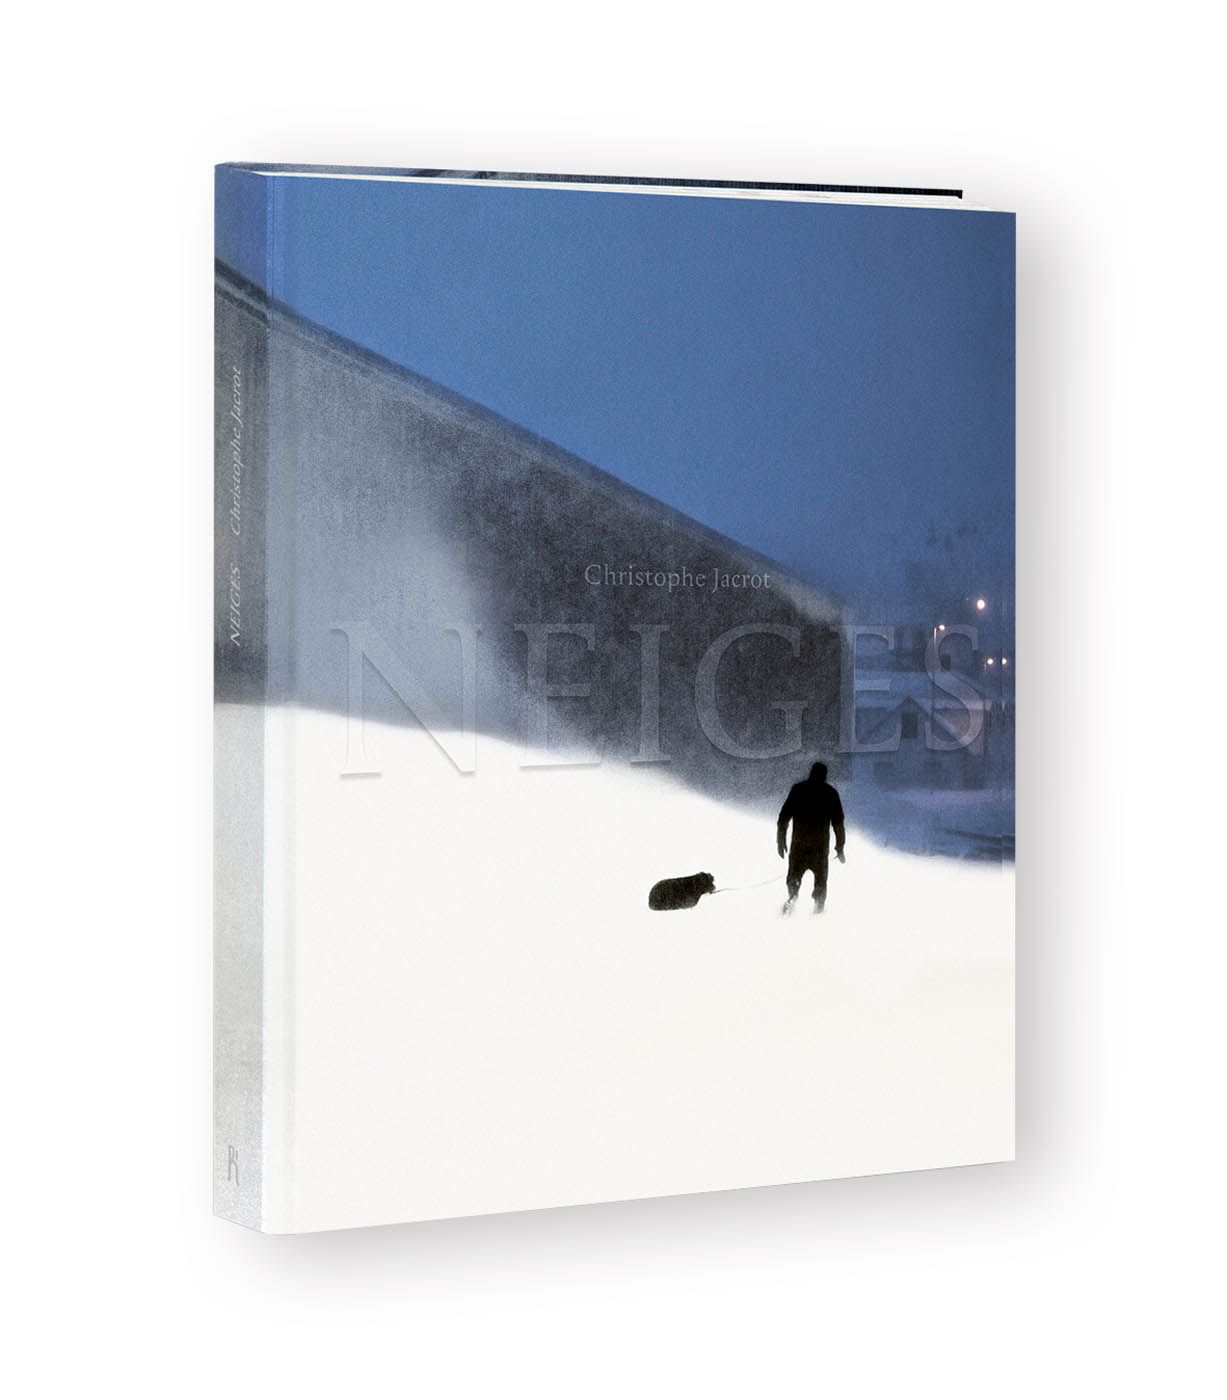 NEIGES - signed photography book,Christophe Jacrot,Photography, detail 2